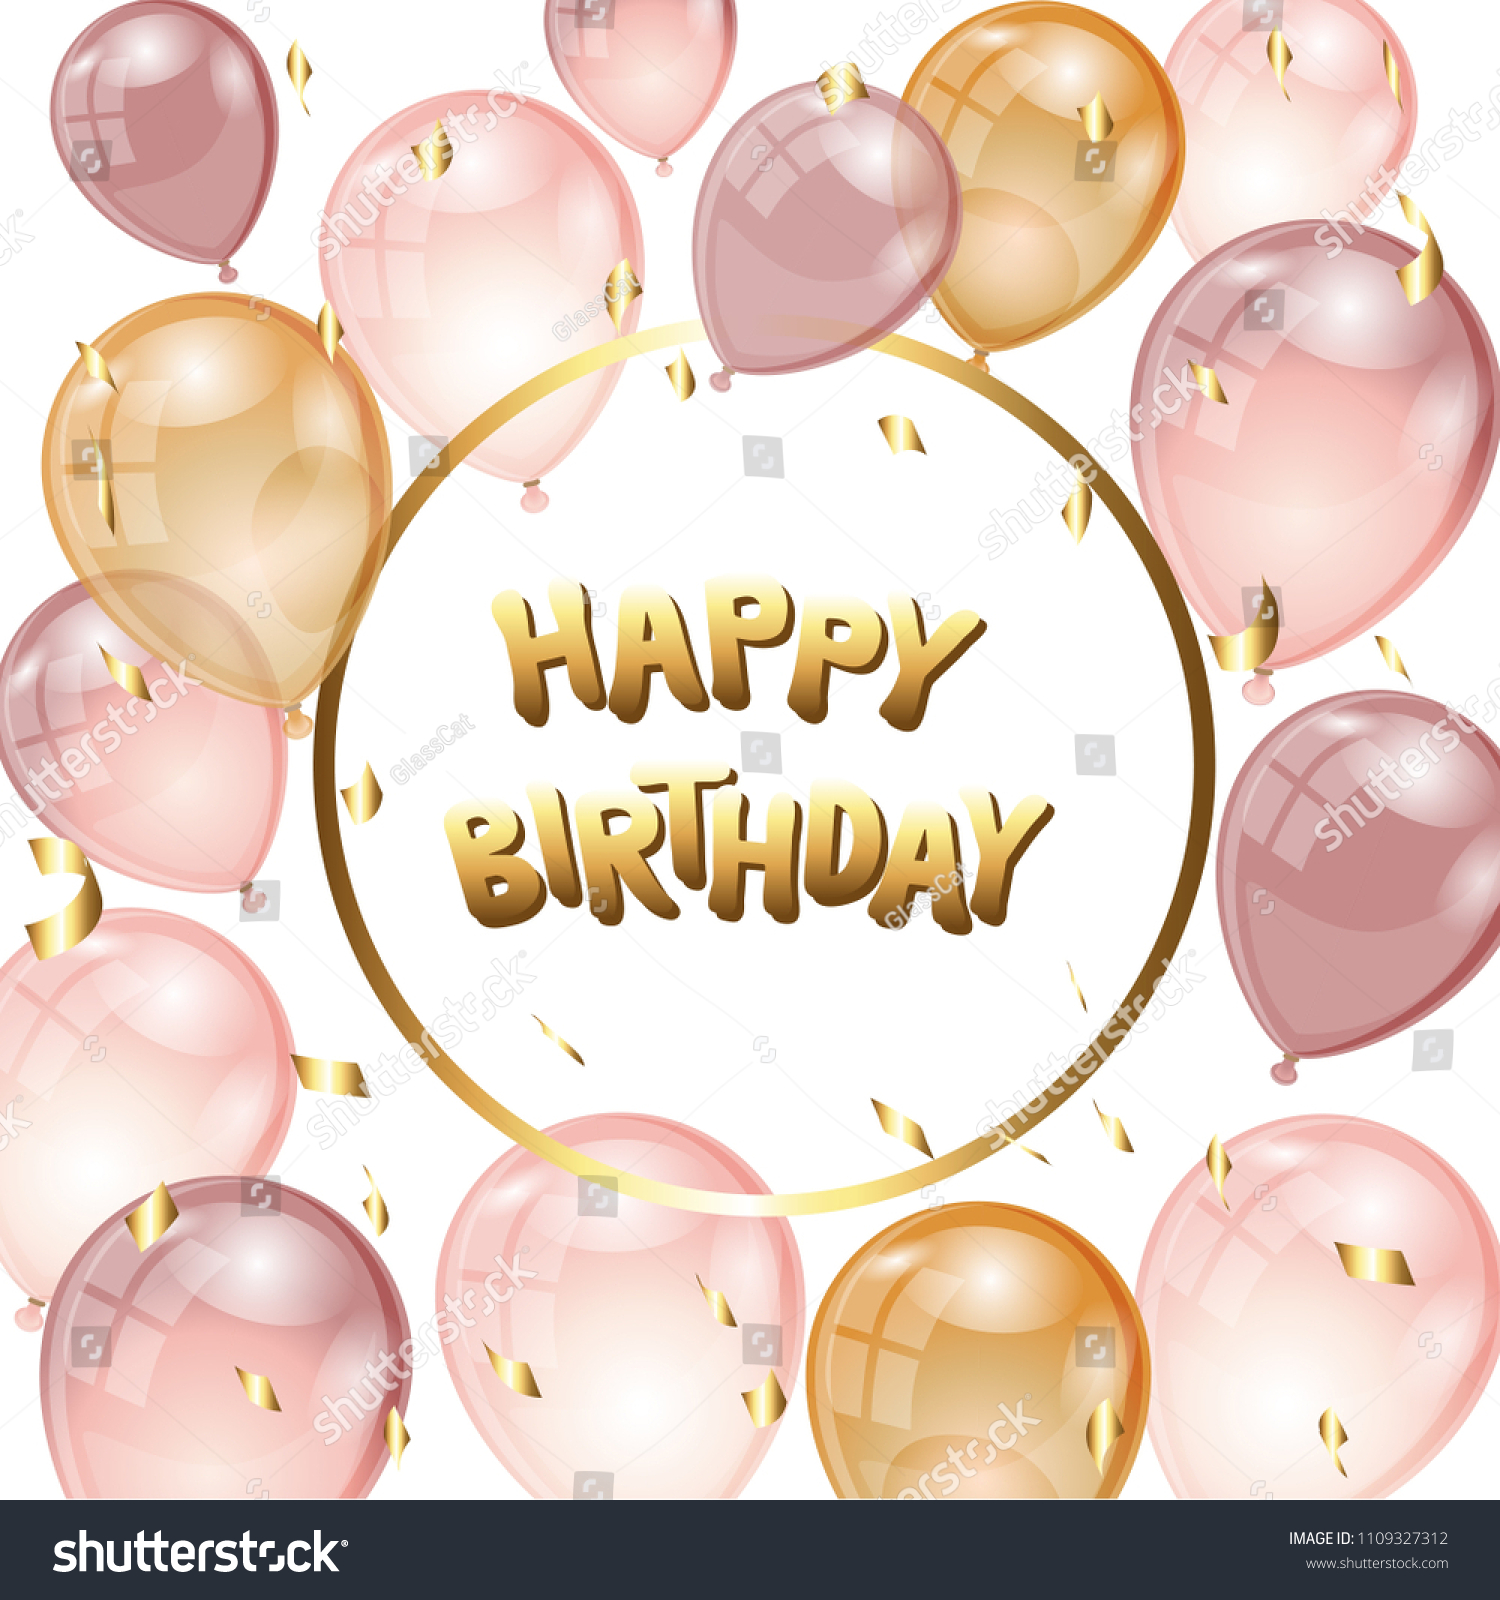 Birthday Background With Rose Gold Balloons Golden Confetti And Place For Text Celebration Card Pink Air Vector Illustration